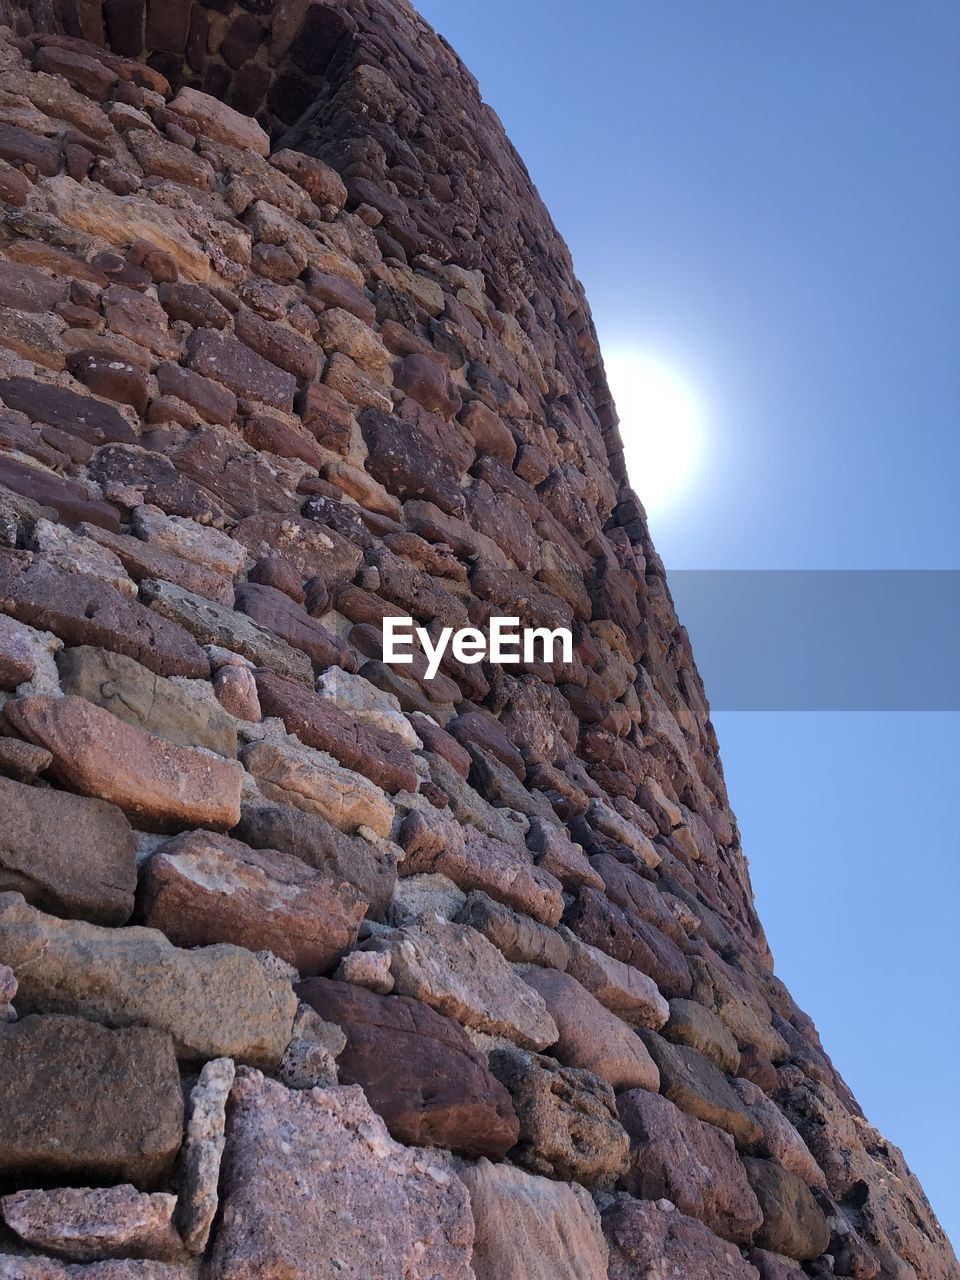 sky, low angle view, rock, solid, day, nature, rock - object, no people, clear sky, textured, rough, sunlight, rock formation, outdoors, beauty in nature, geology, mountain, tranquility, close-up, physical geography, formation, eroded